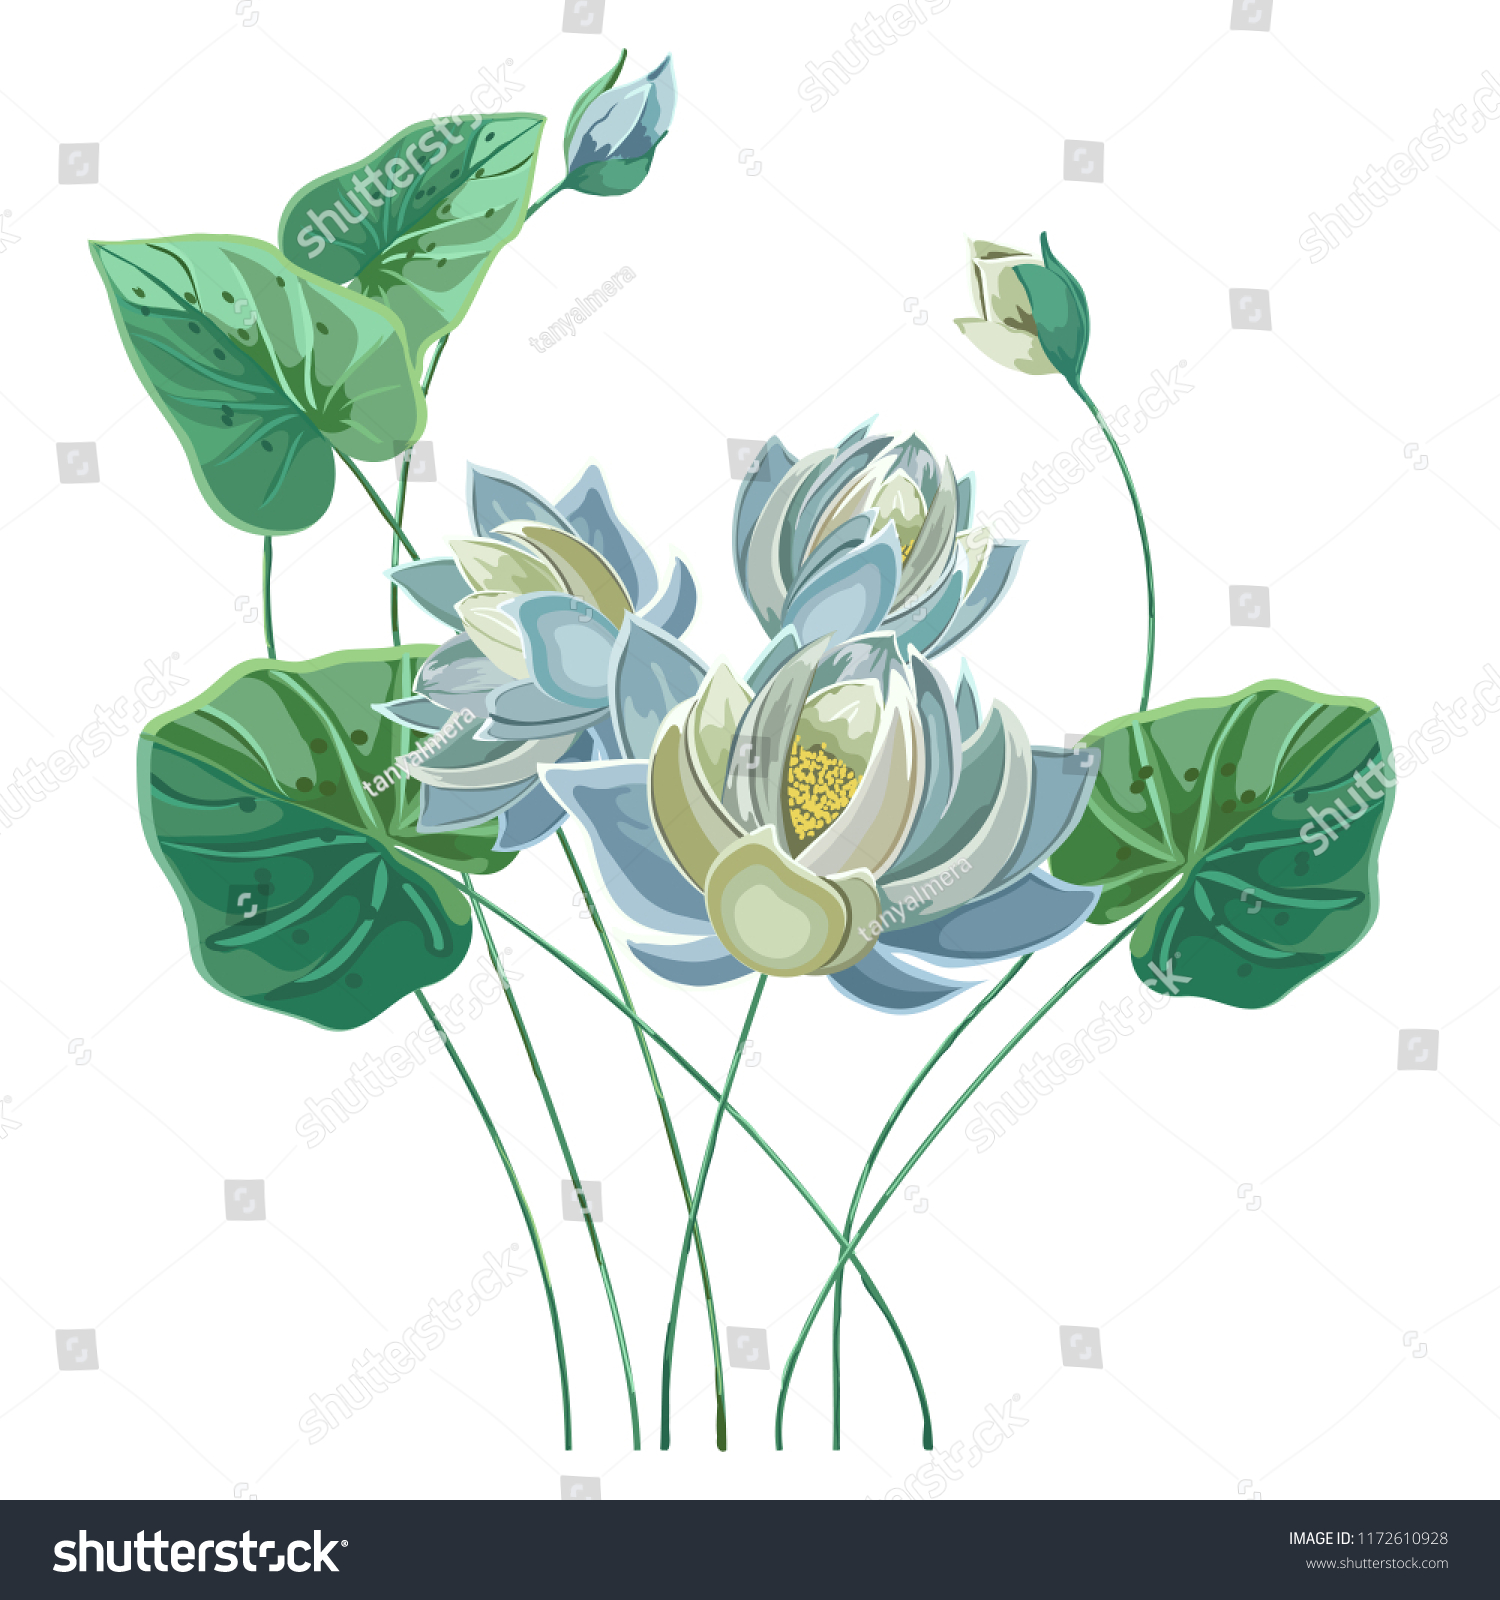 Composition blue lotus flower green leaves stock vector royalty composition of blue lotus flower with green leaves in hand drawn style pastel colorsalistic izmirmasajfo